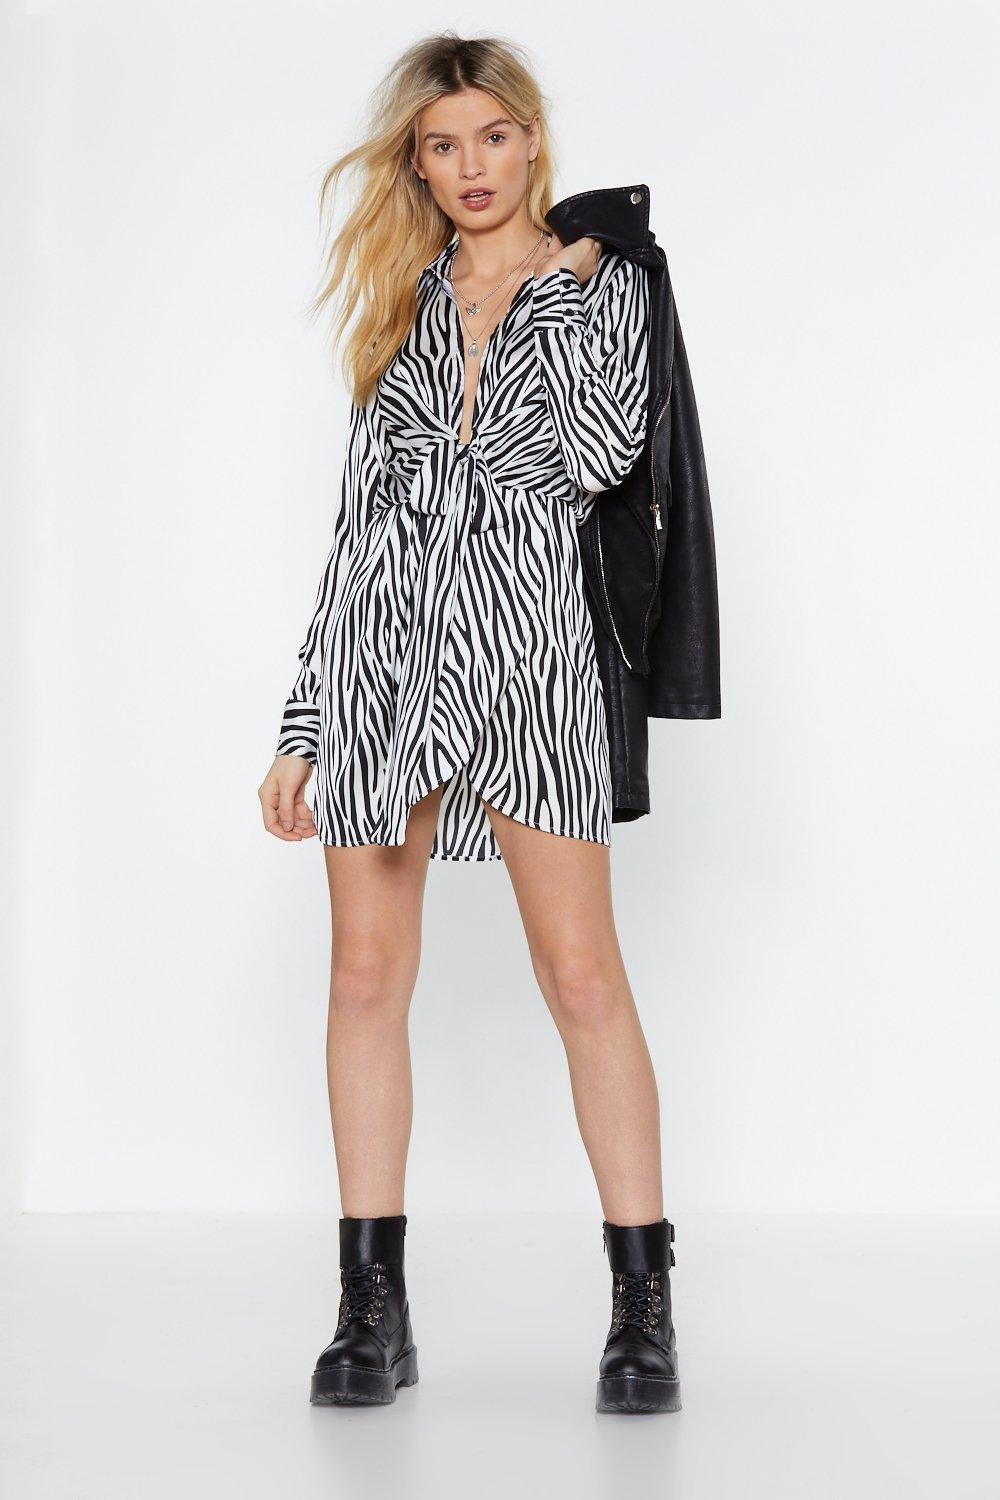 fc709f8c54a36 Our Stripe of Girl Zebra Dress | Shop Clothes at Nasty Gal!